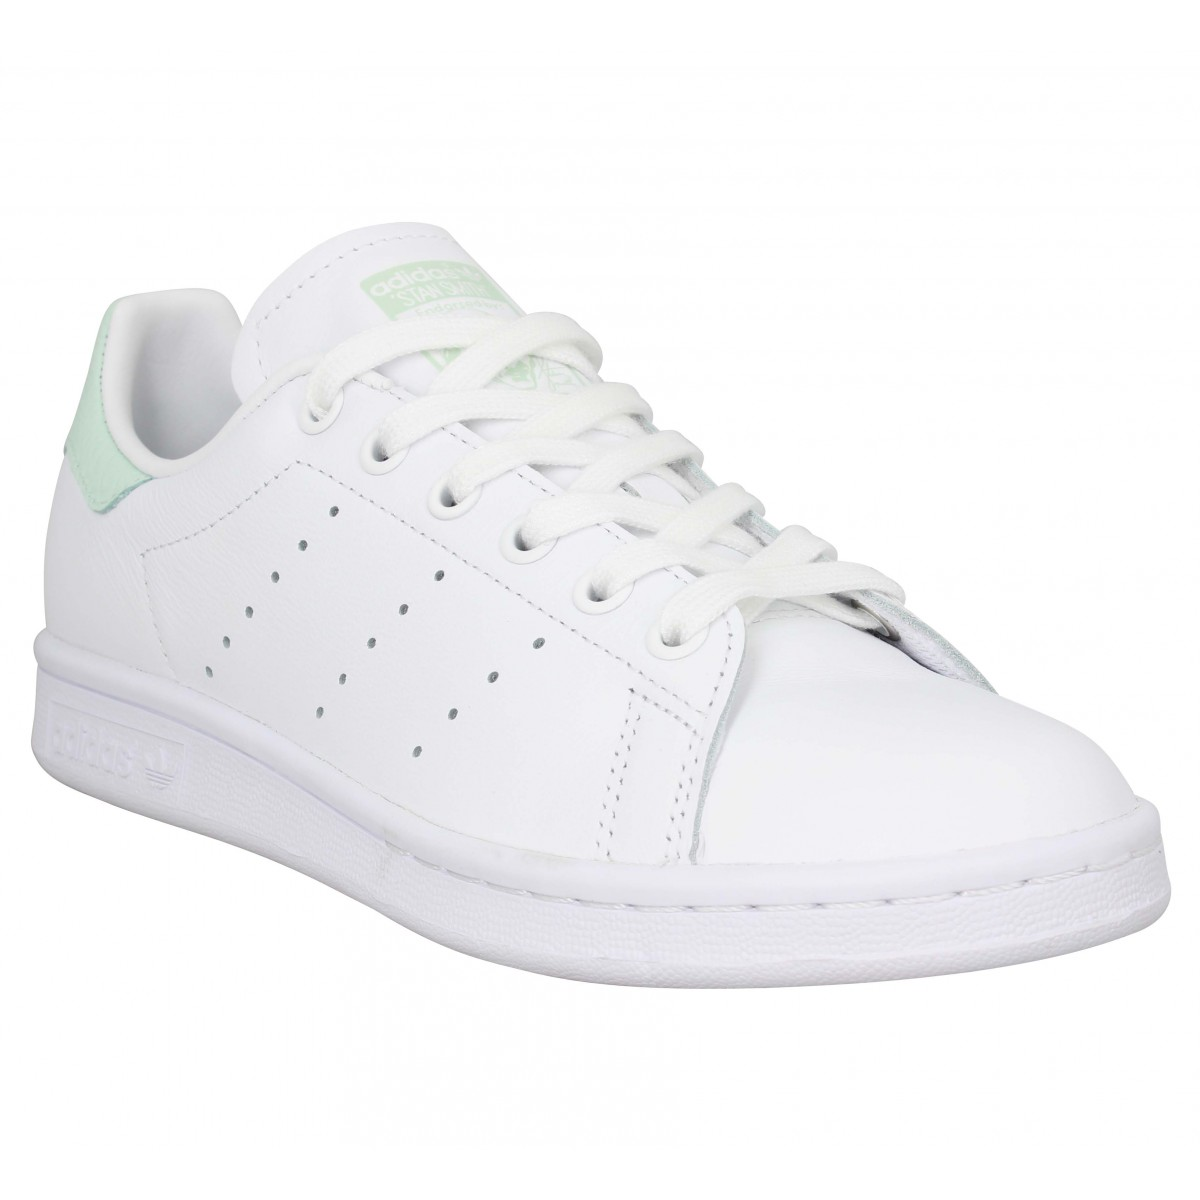 Baskets ADIDAS Stan Smith cuir viperine Femme Blanc Vert